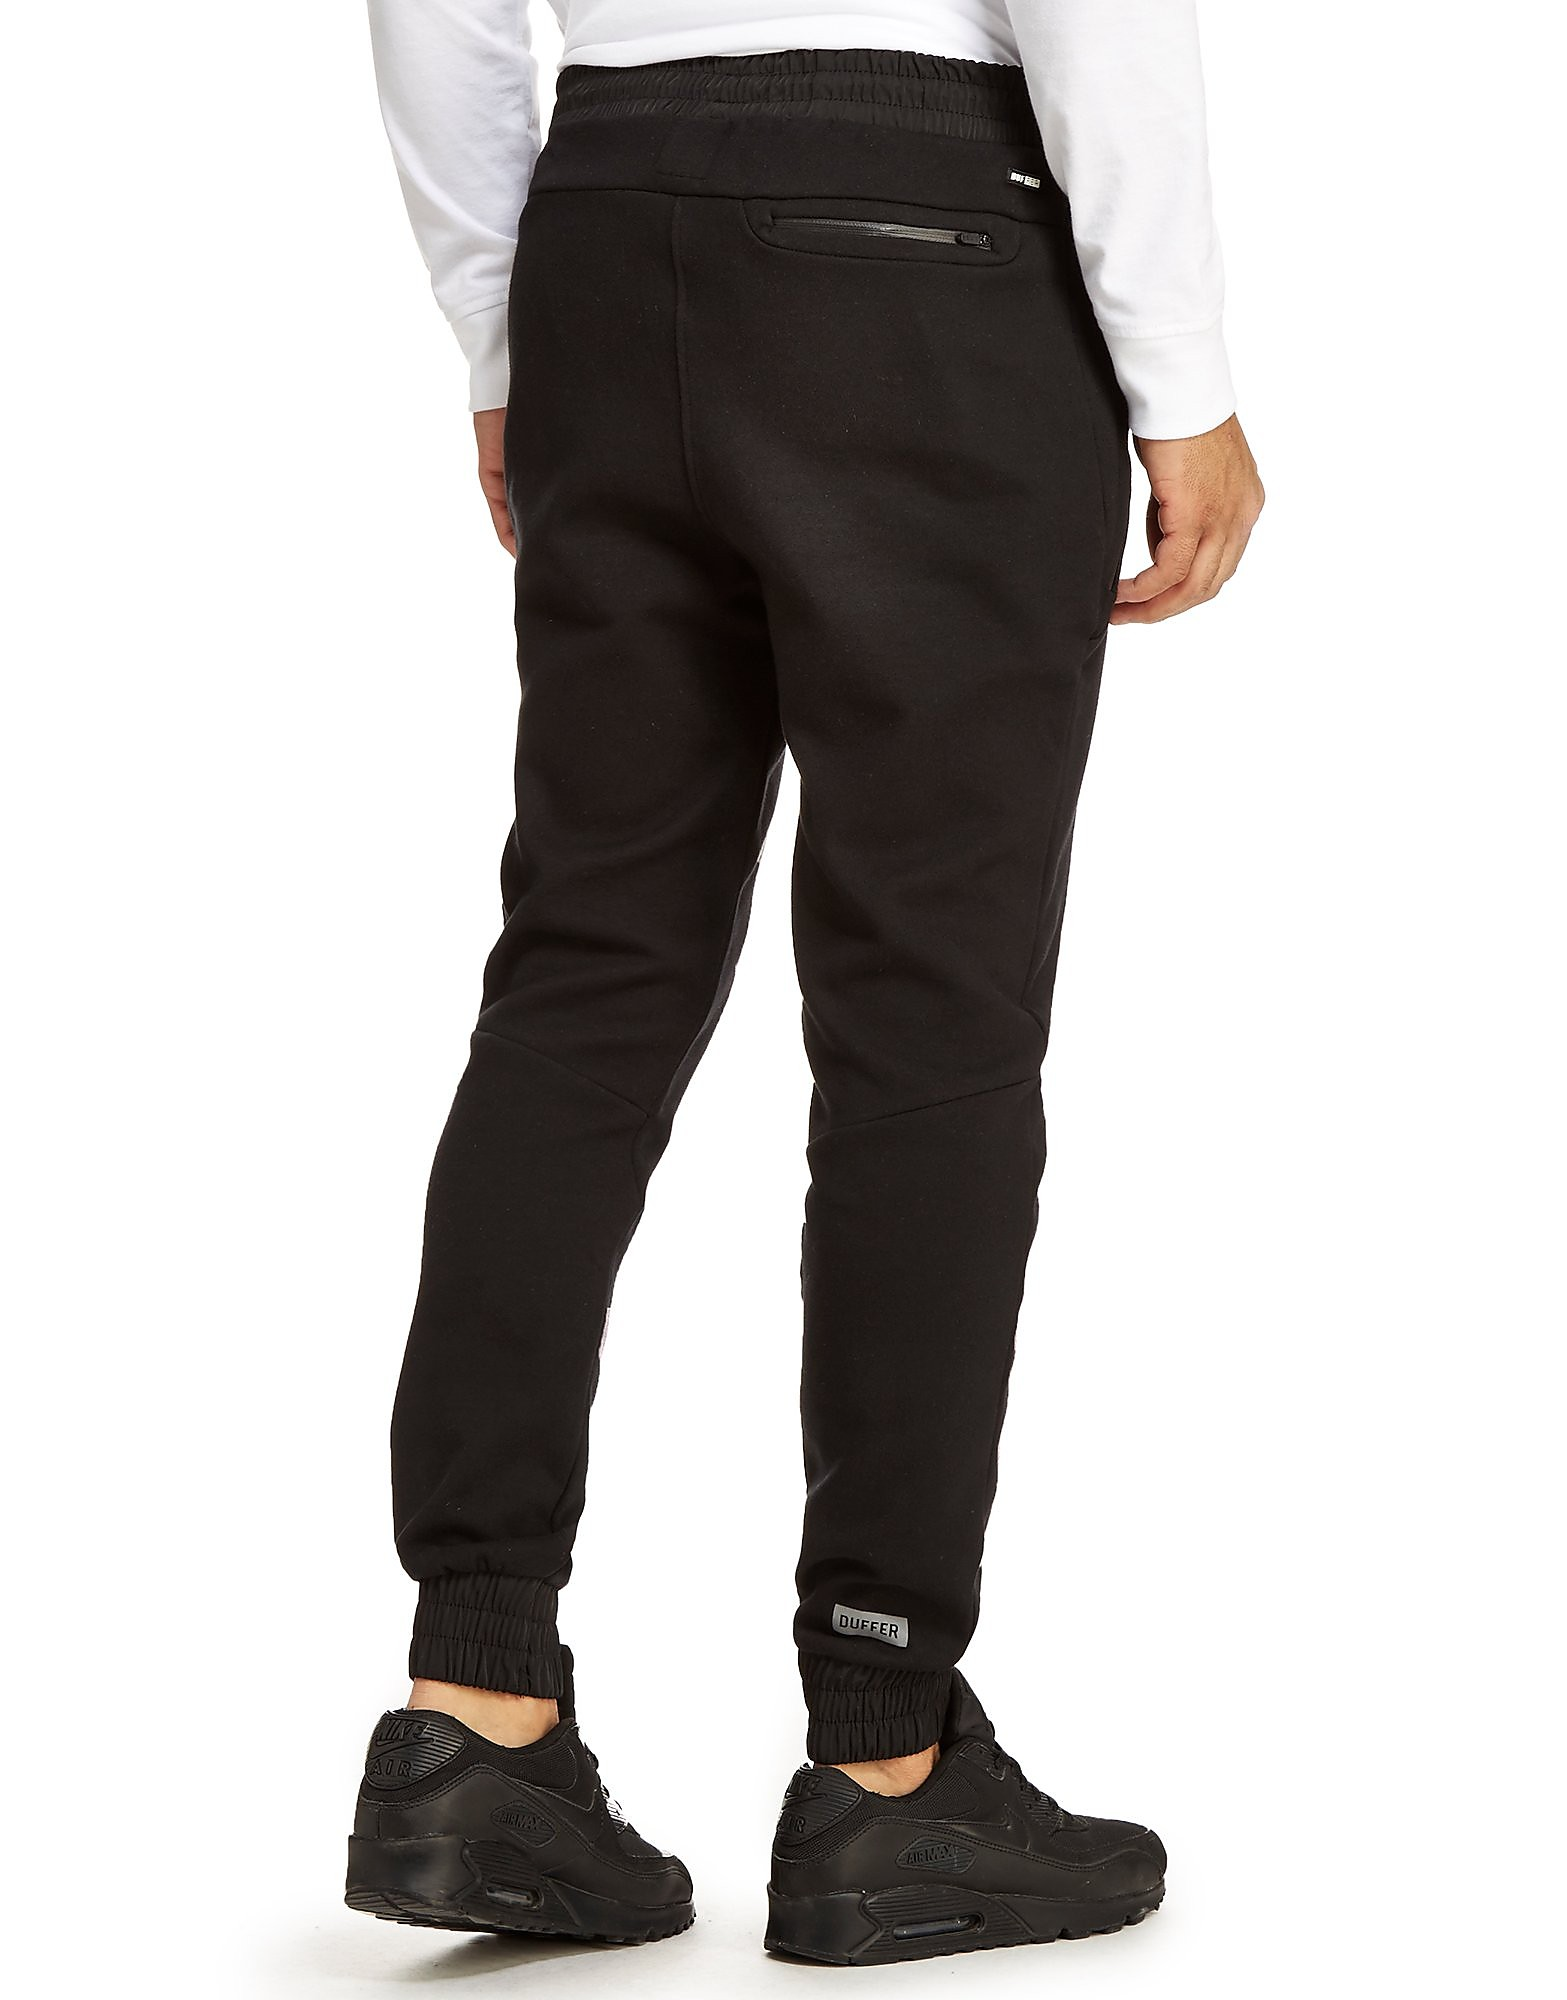 Duffer of St George Black Label Webley Joggers